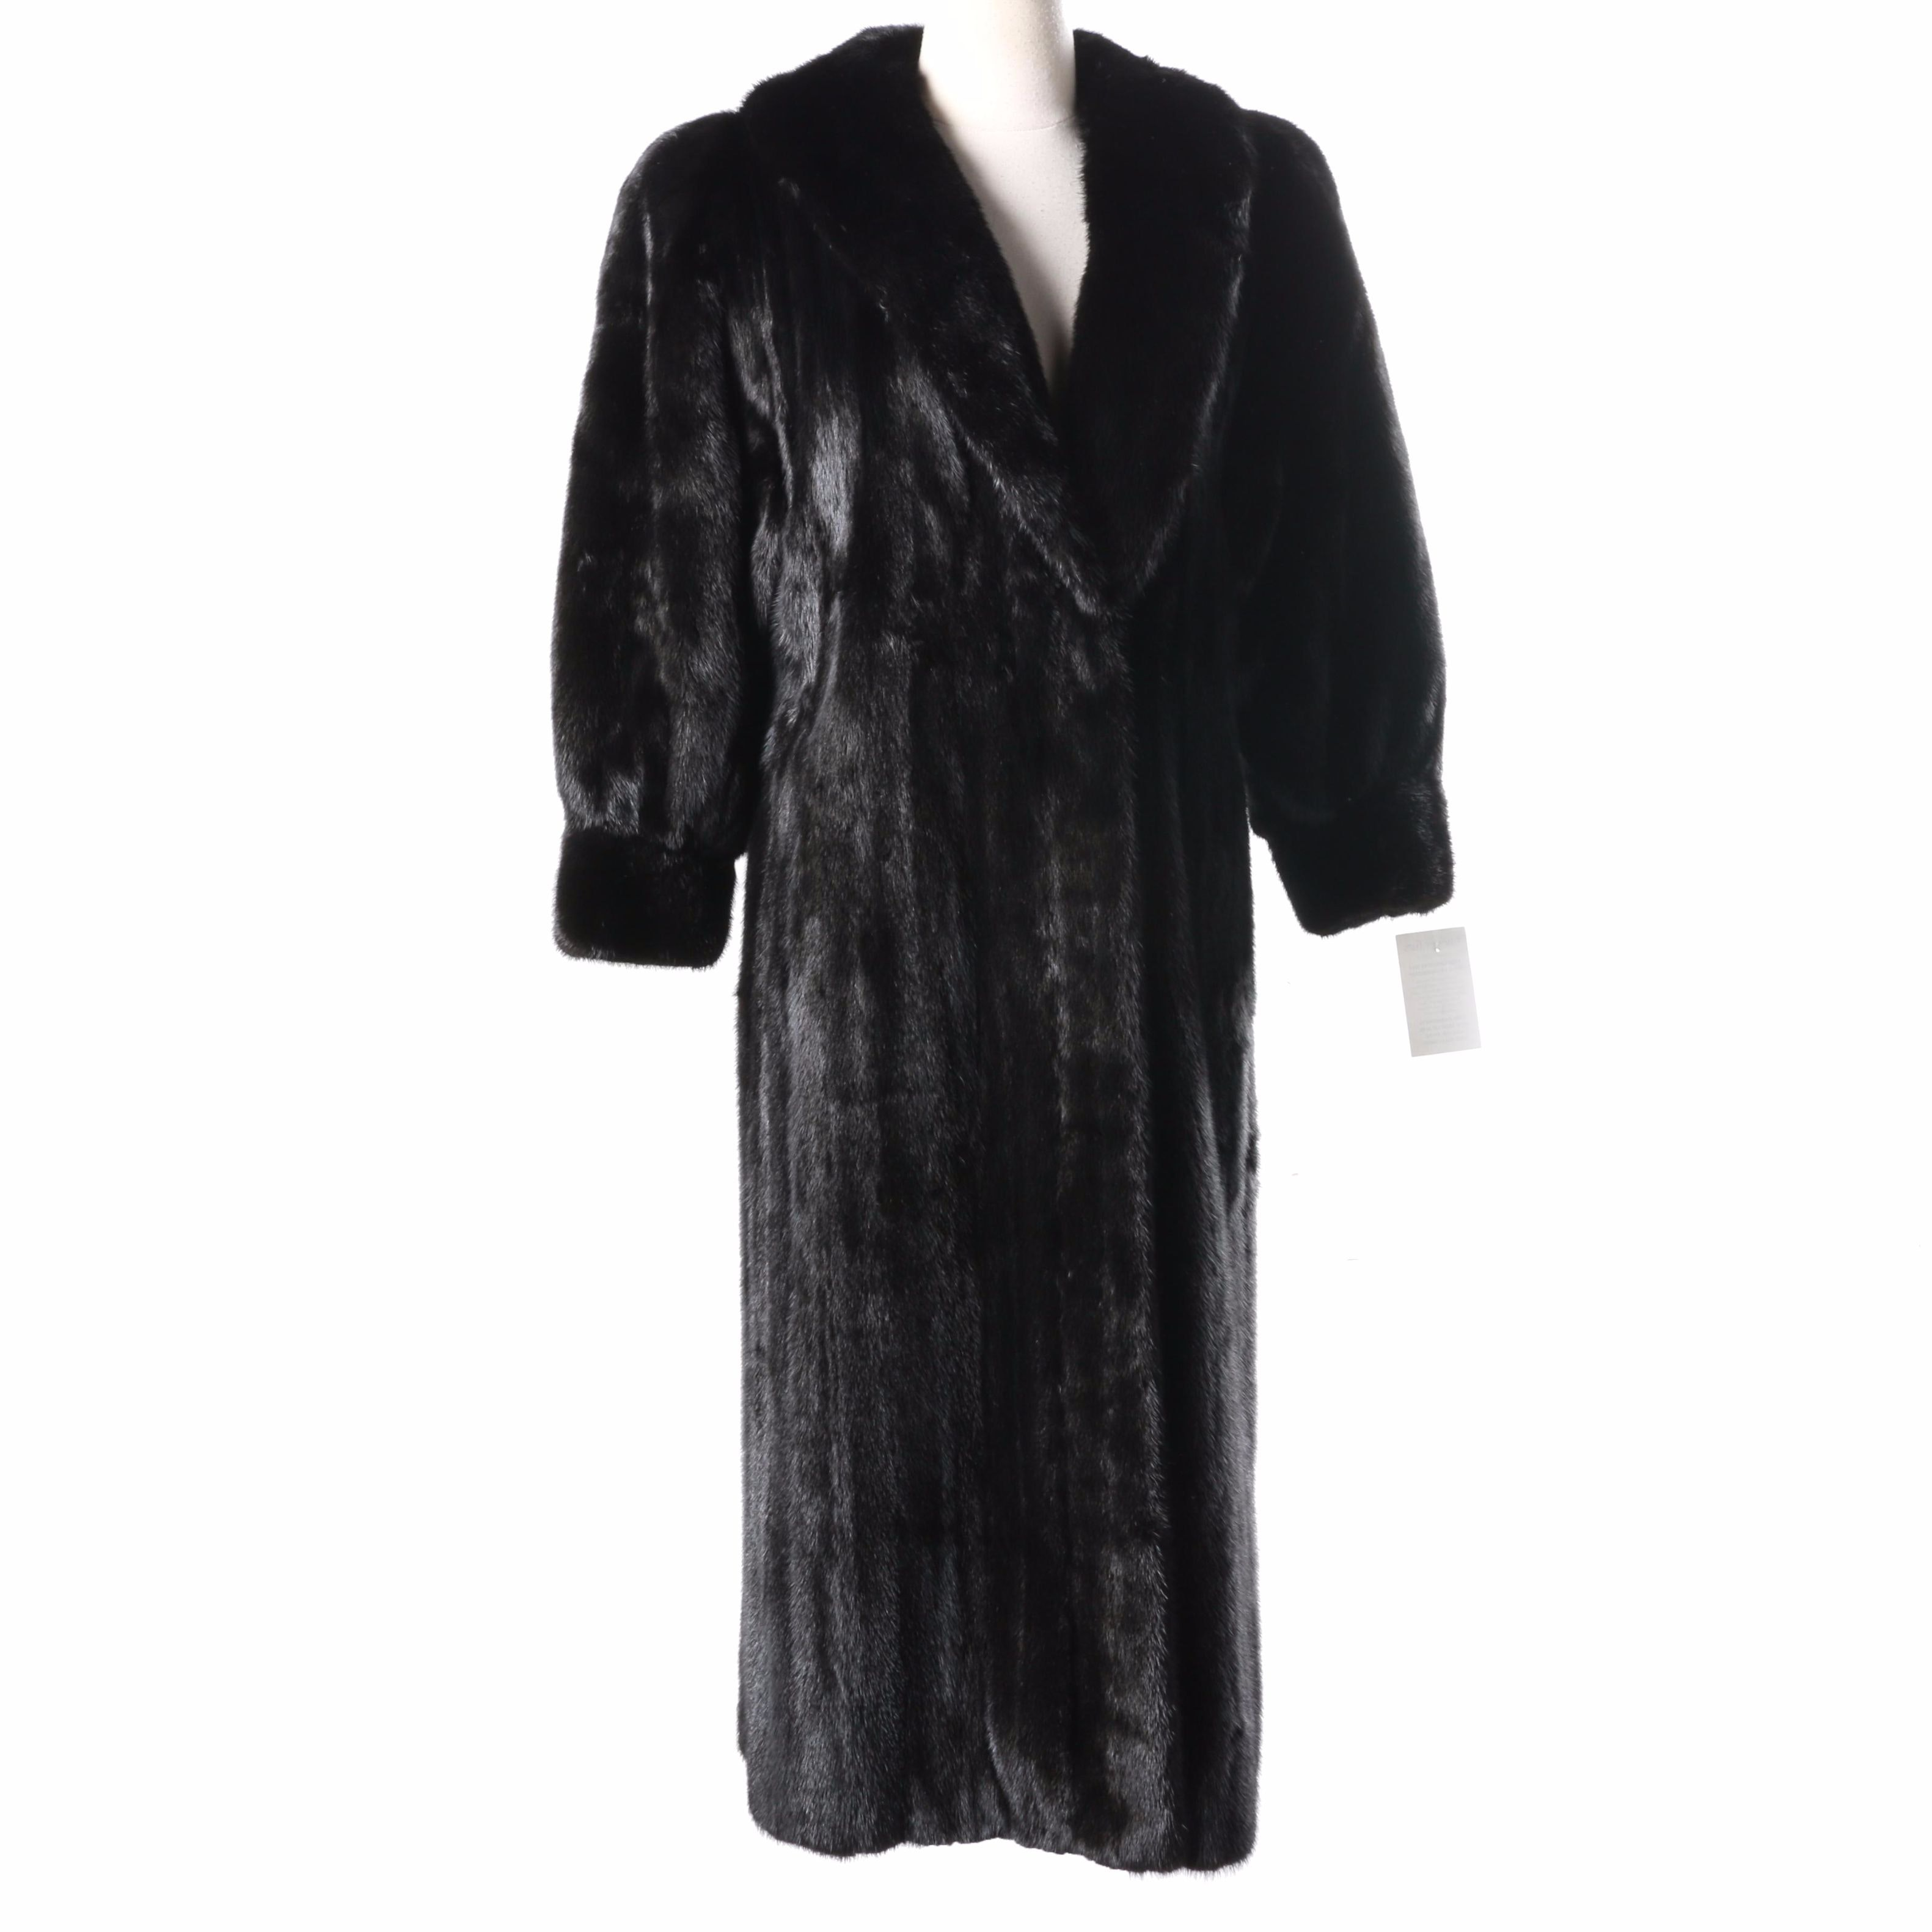 Mink Fur Coat by Klyman Furs